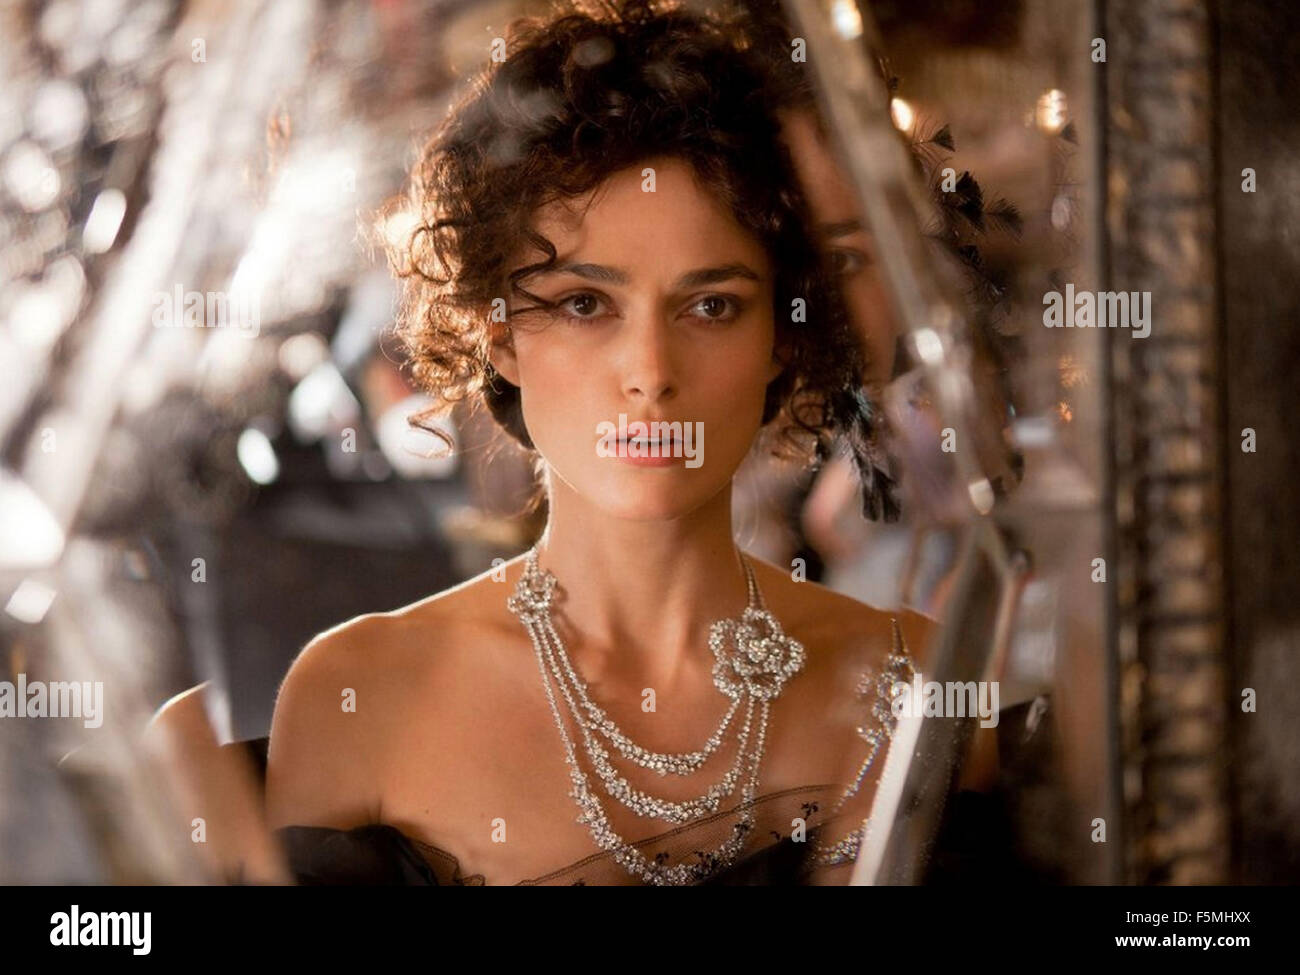 ANNA KARENINA 2012 Universal Pictures film with Keira Knightley in the title role - Stock Image